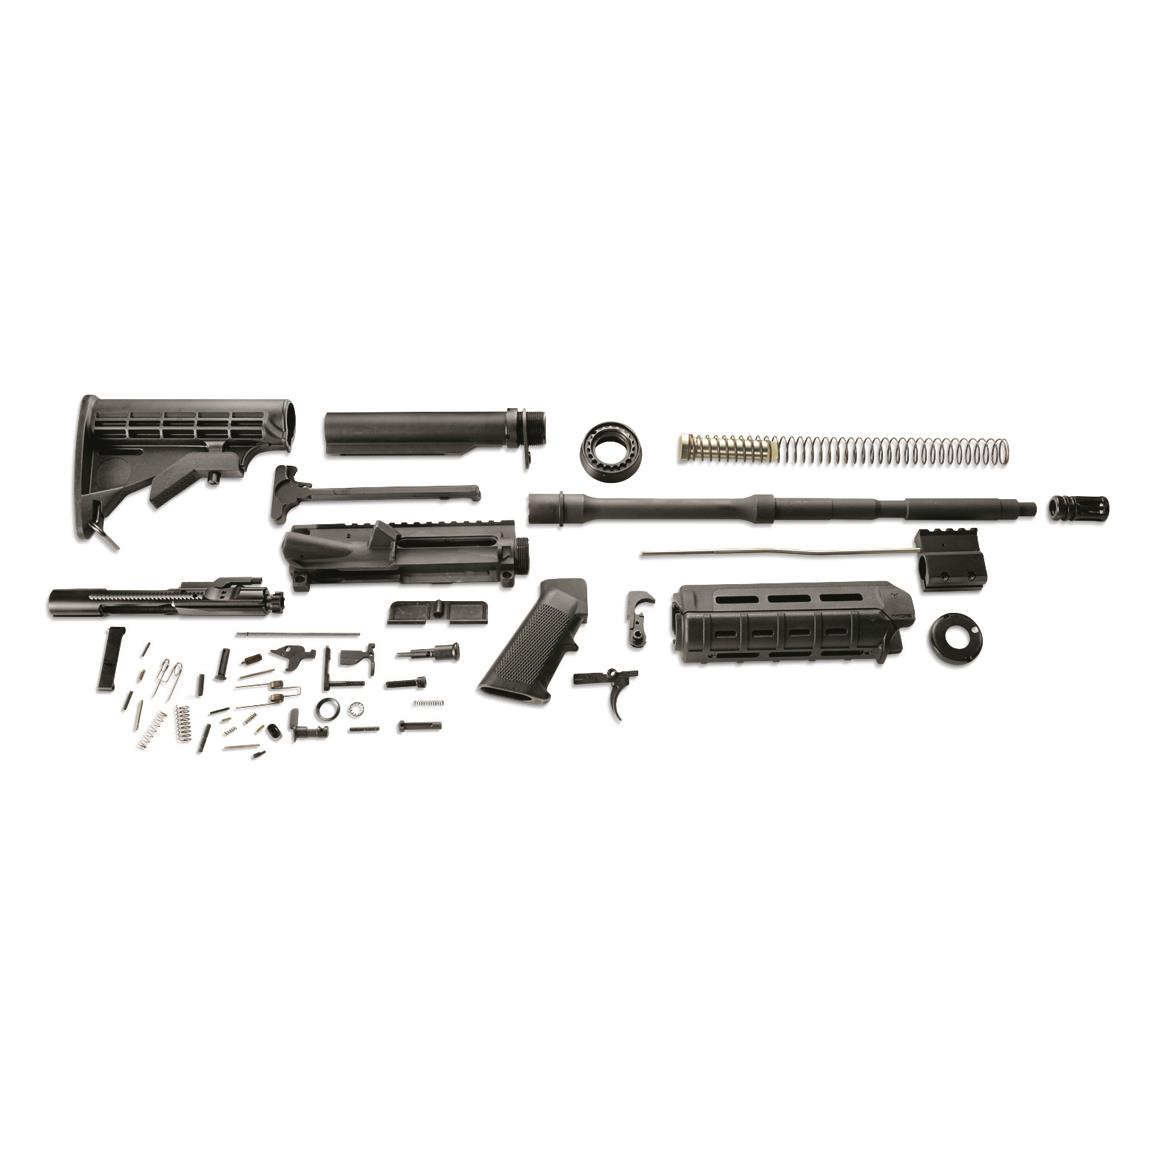 A full set of parts to satisfy your next gun project!